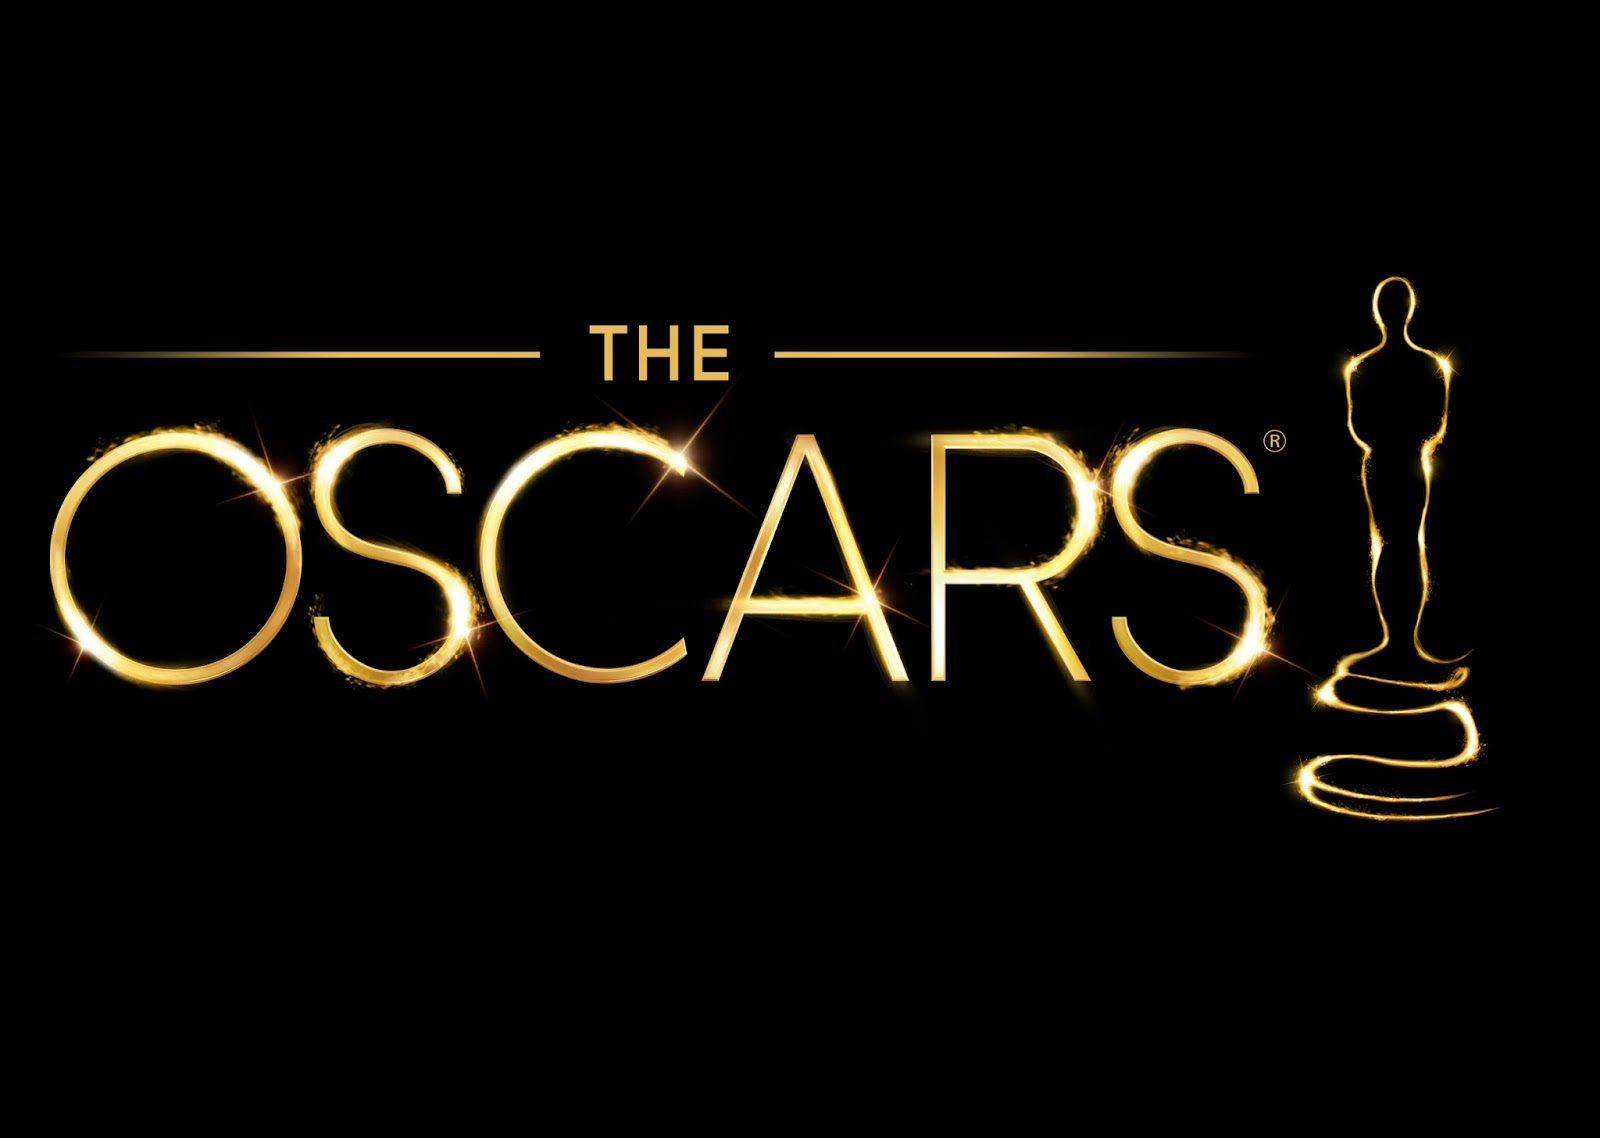 86th Oscar Academy Award List